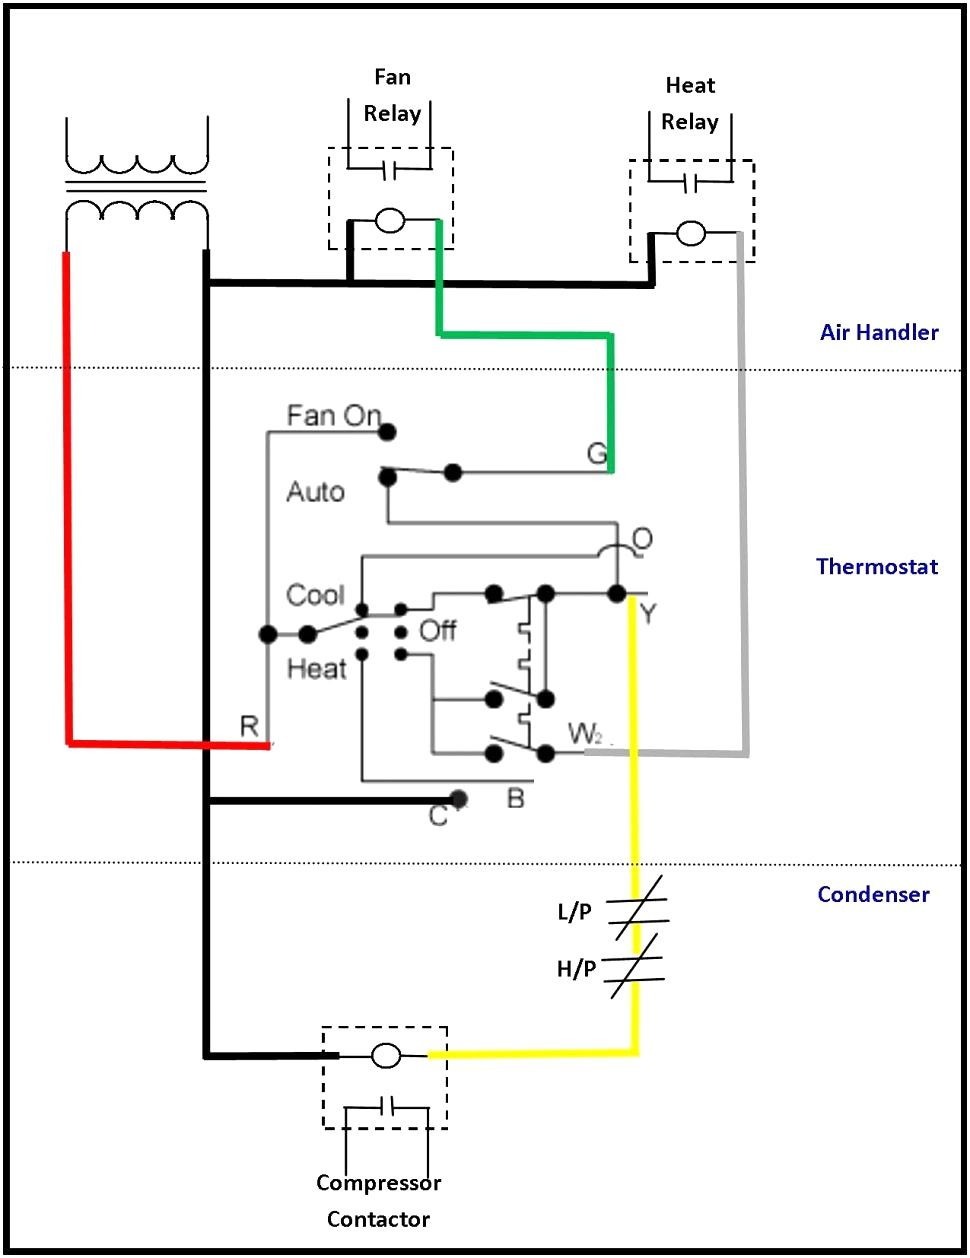 5 Pin Bosch Relay Wiring Diagram - fitfathers.me | Electrical circuit  diagram, Transformer wiring, Thermostat wiringPinterest